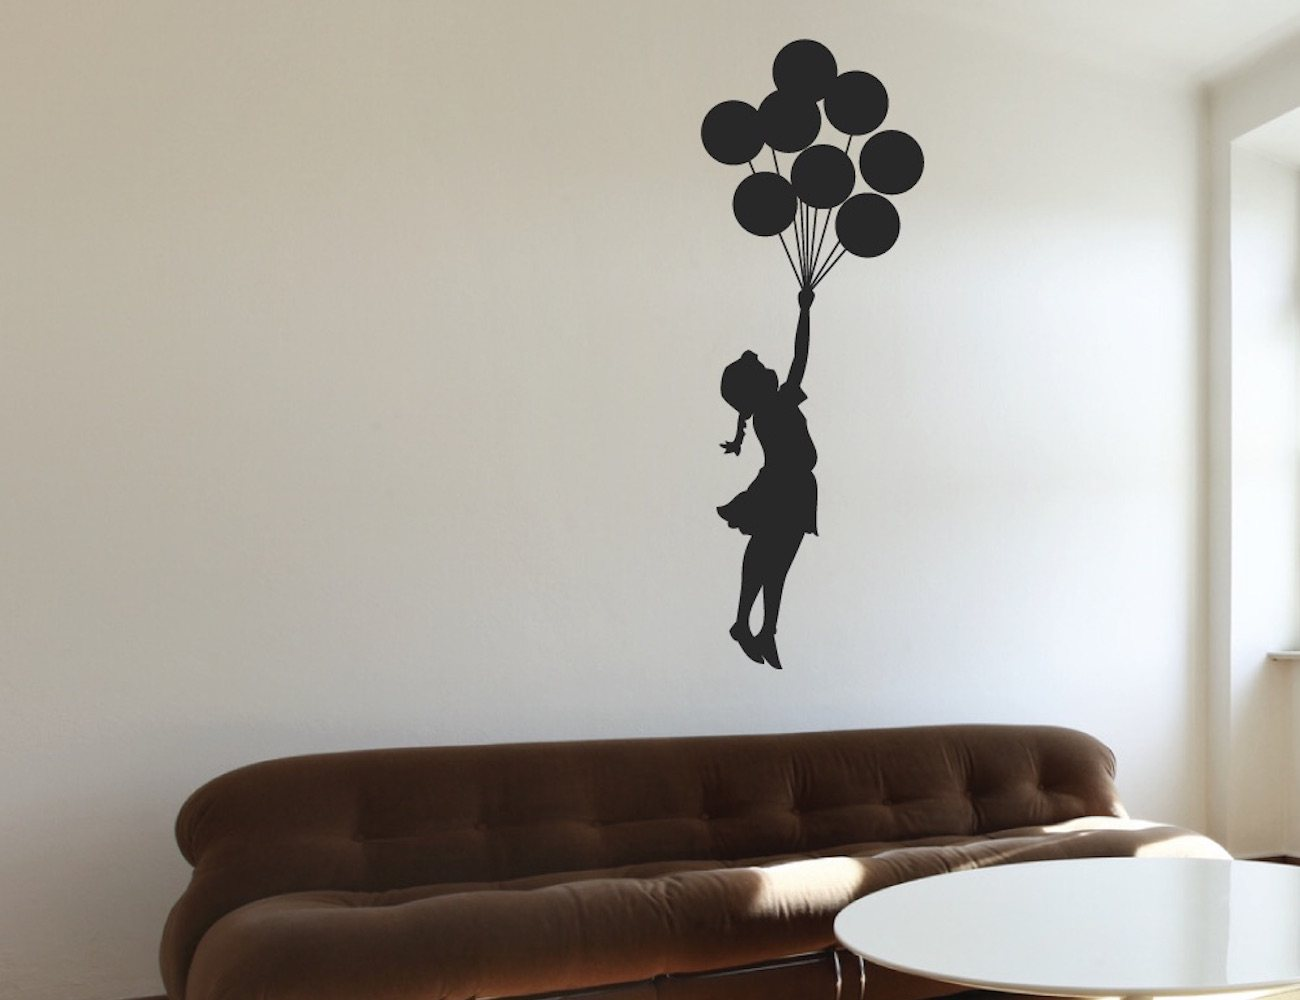 Floating Balloon Wall Sticker – Displaying the Exquisite Banksy Art